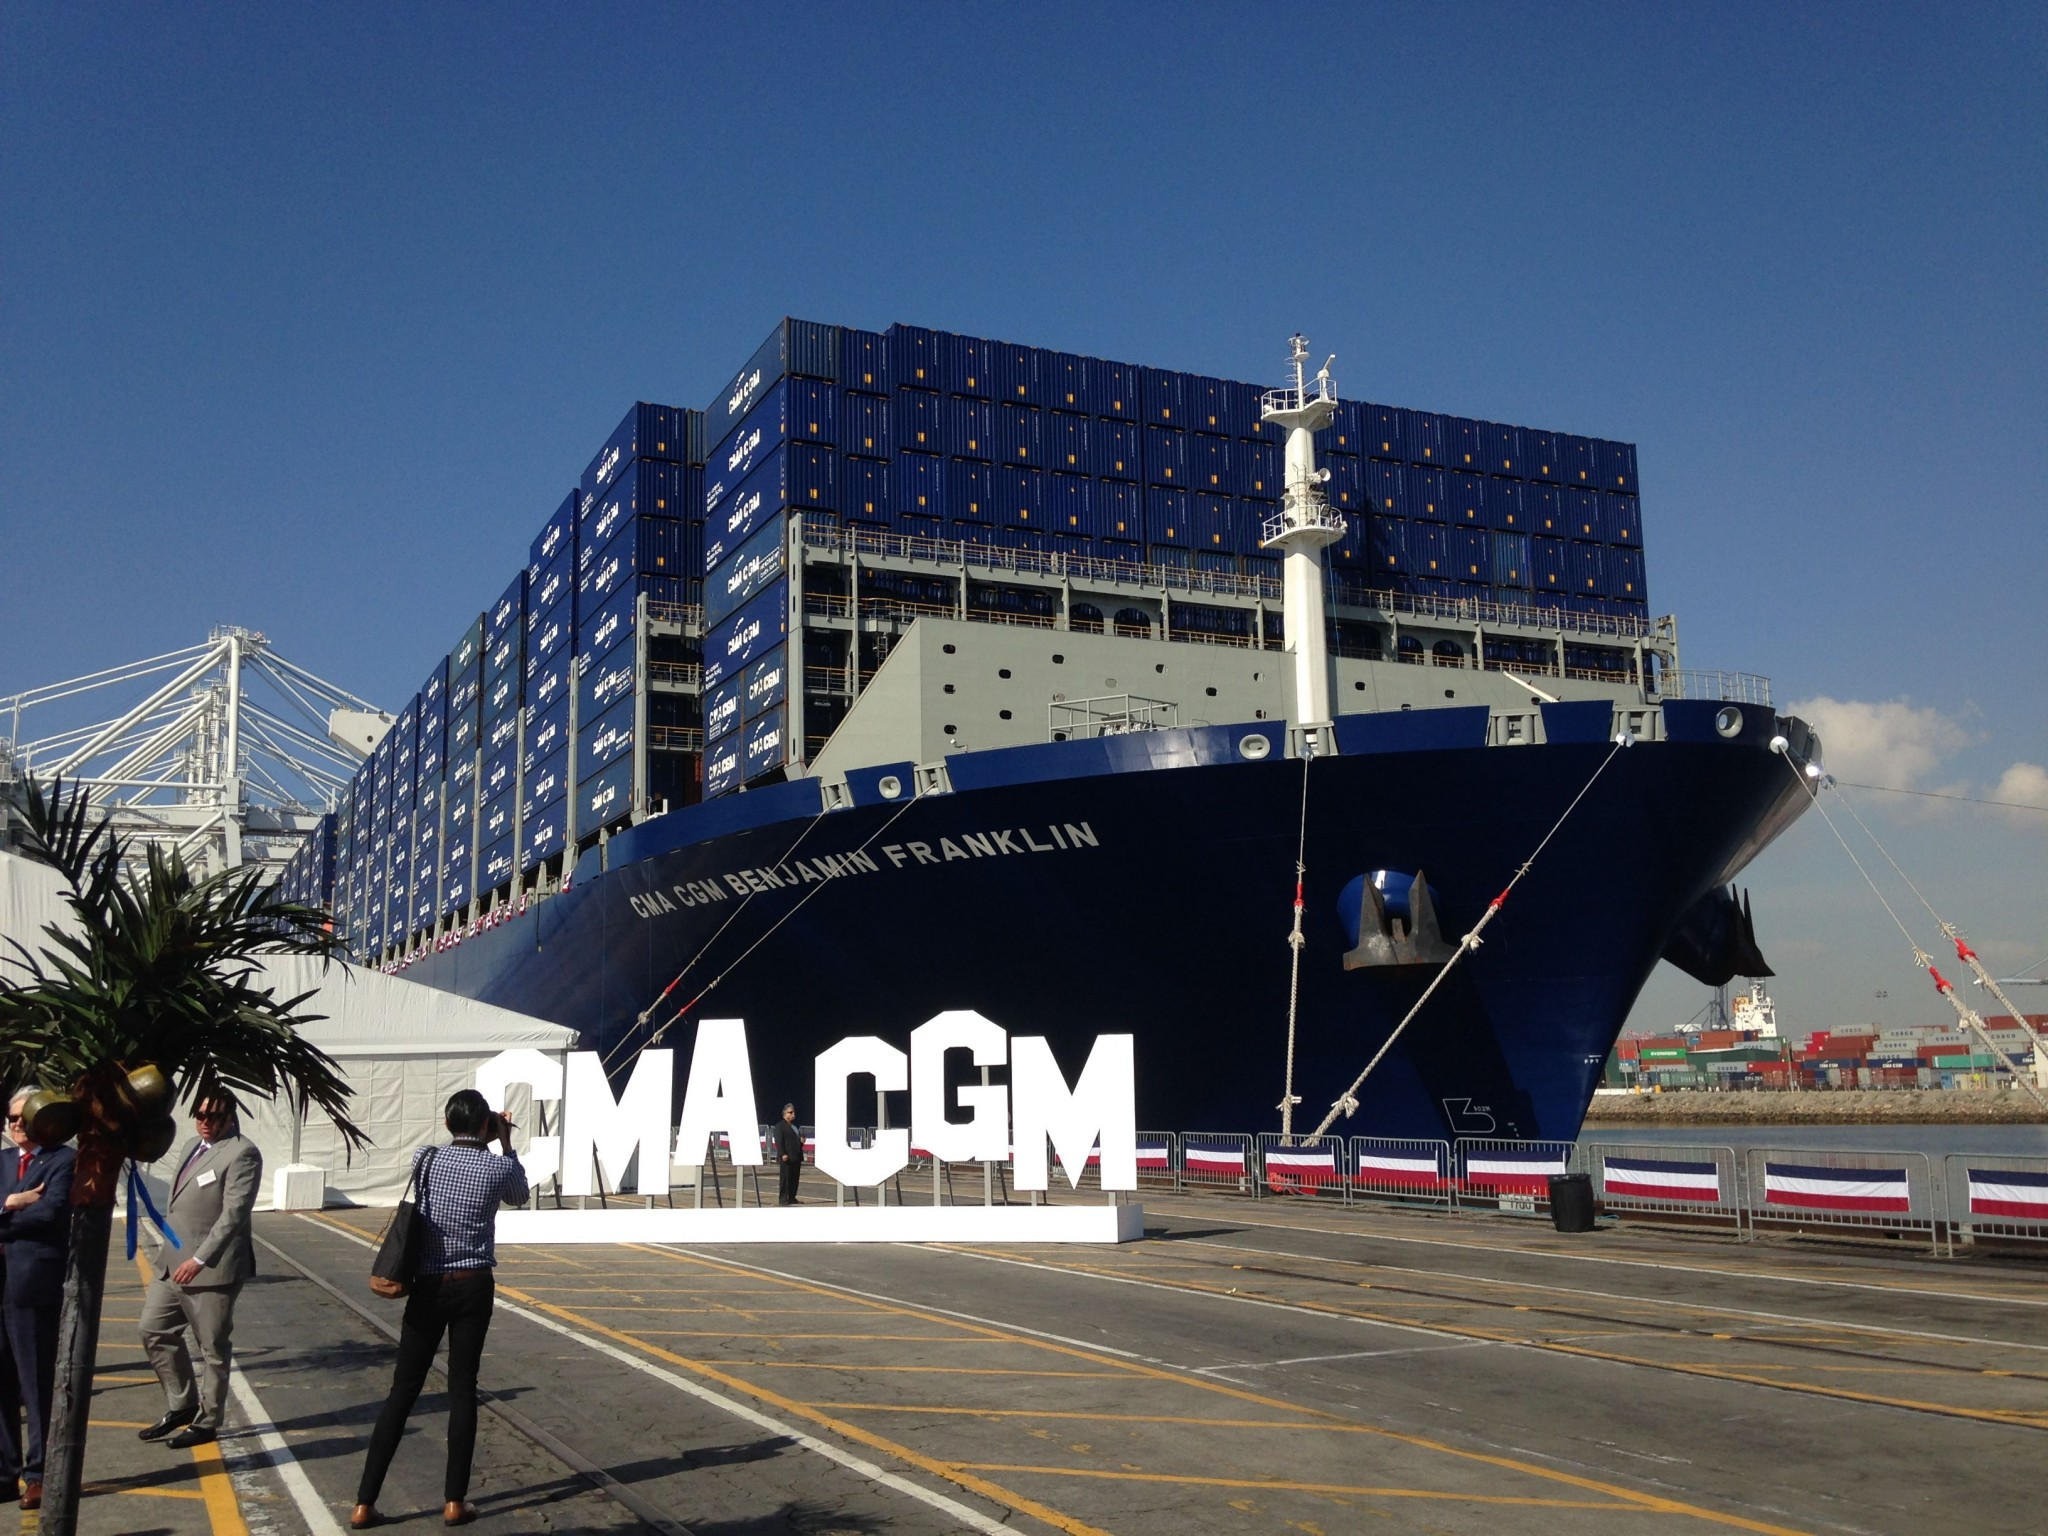 The CMA CGM Benjamin Franklin. Photo by Frances Anderton.